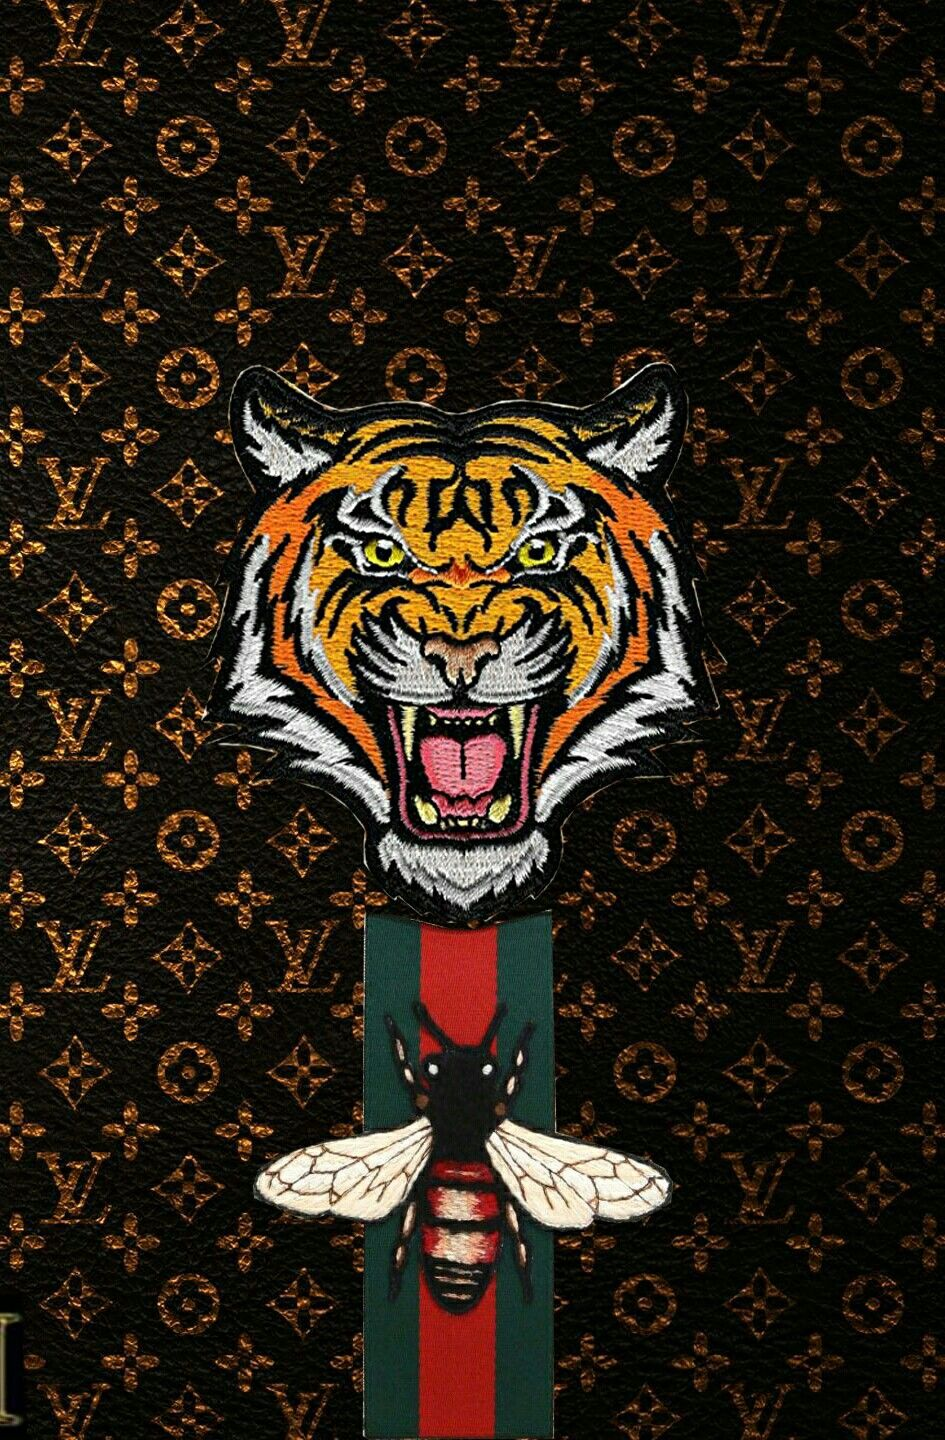 Gucci LV Aesthetic iphone wallpaper, Iphone wallpaper